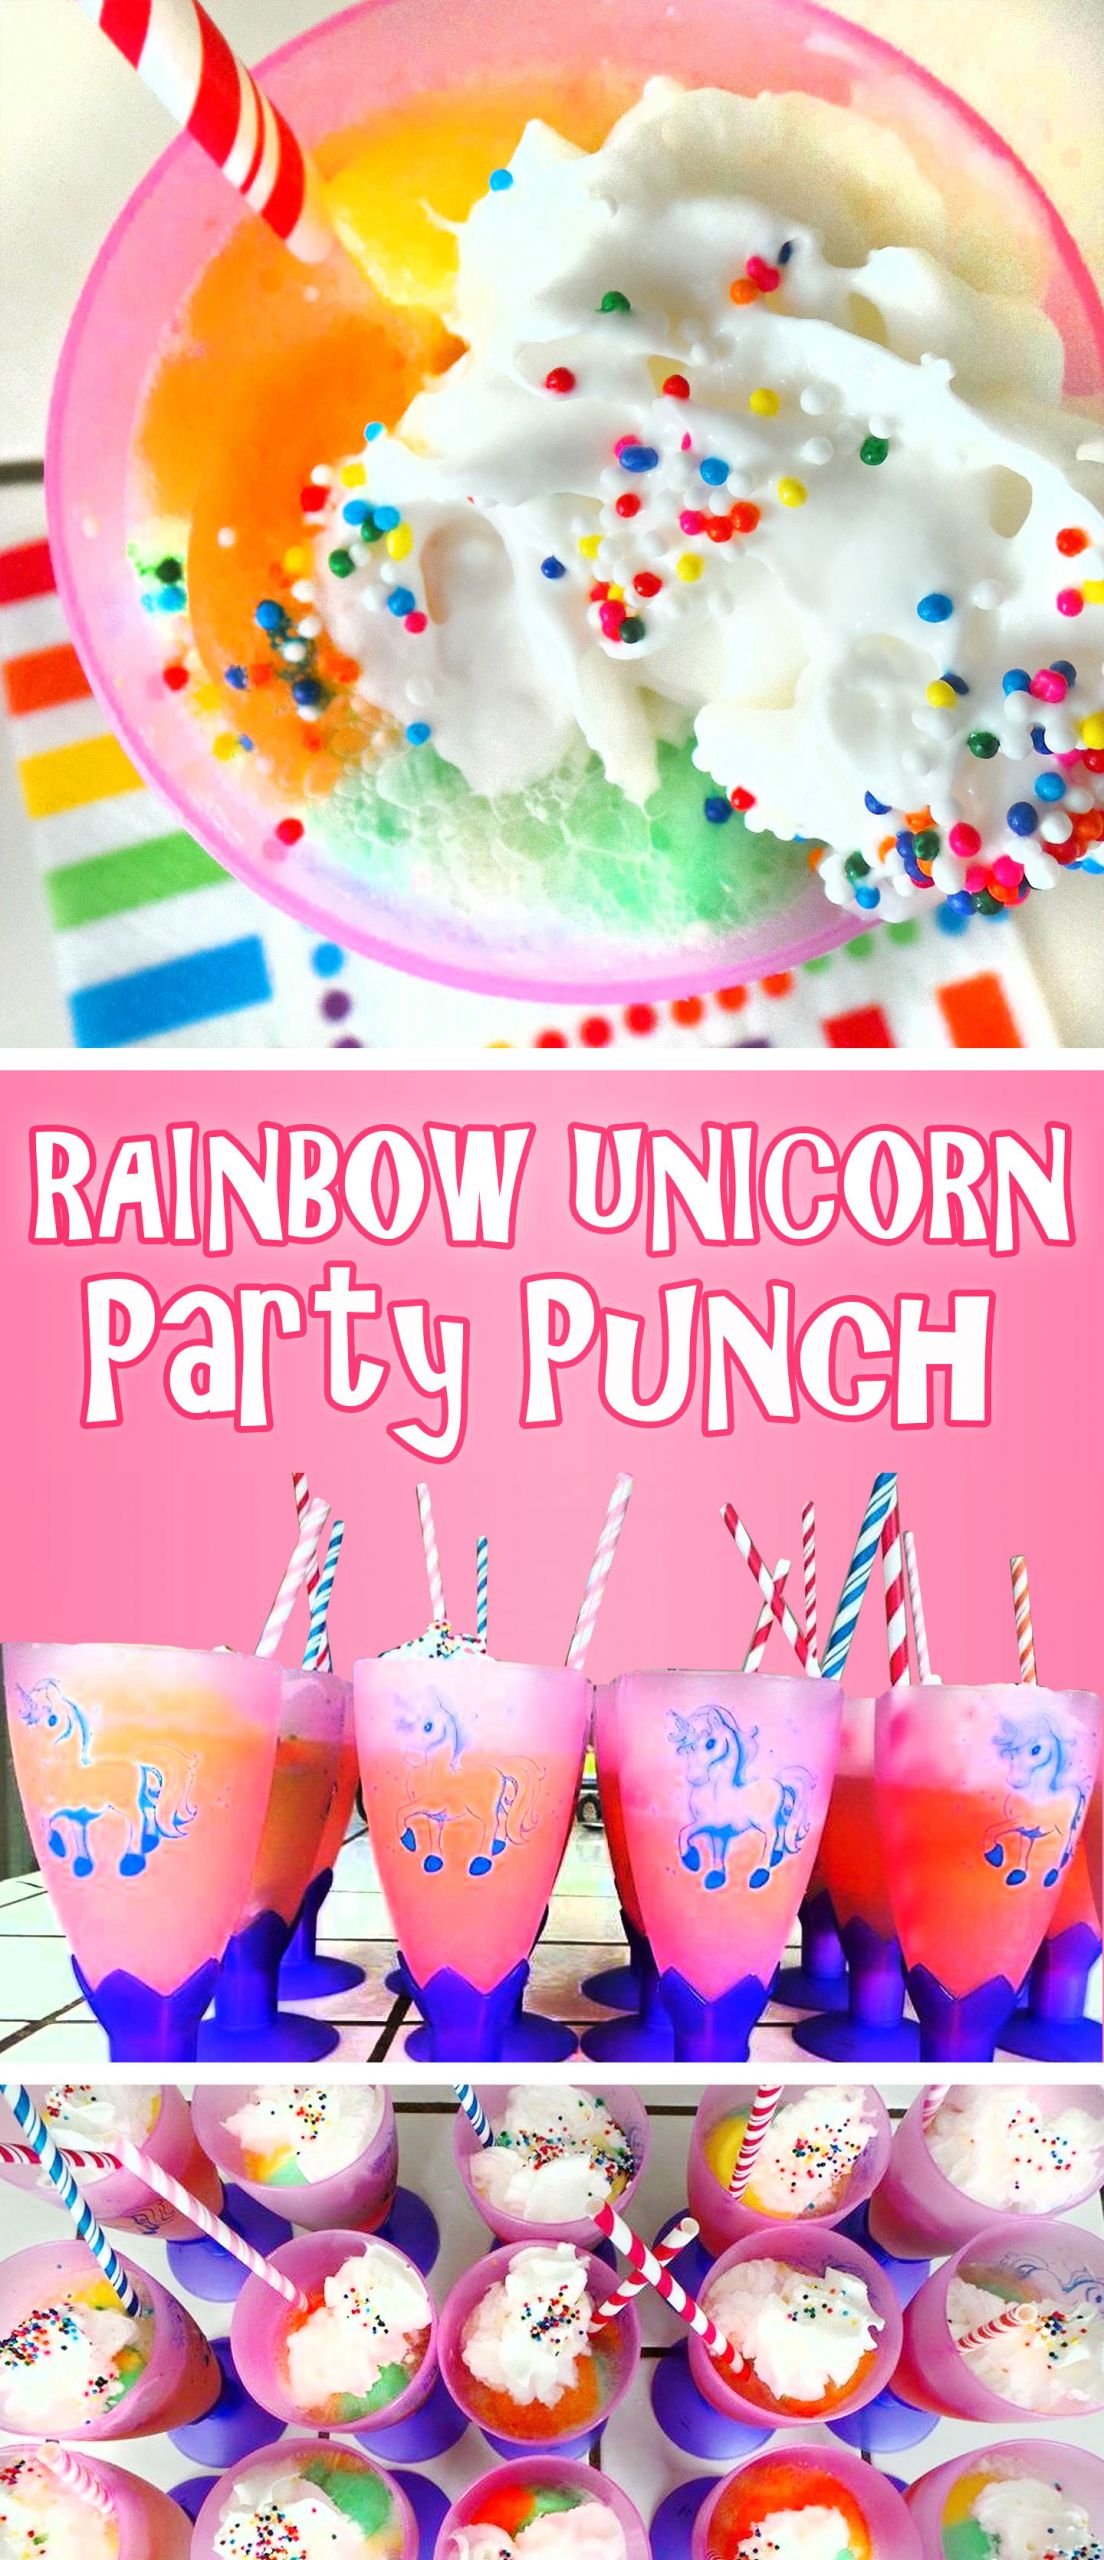 Unicorn Food Ideas For Party  Rainbow Unicorn Party Punch